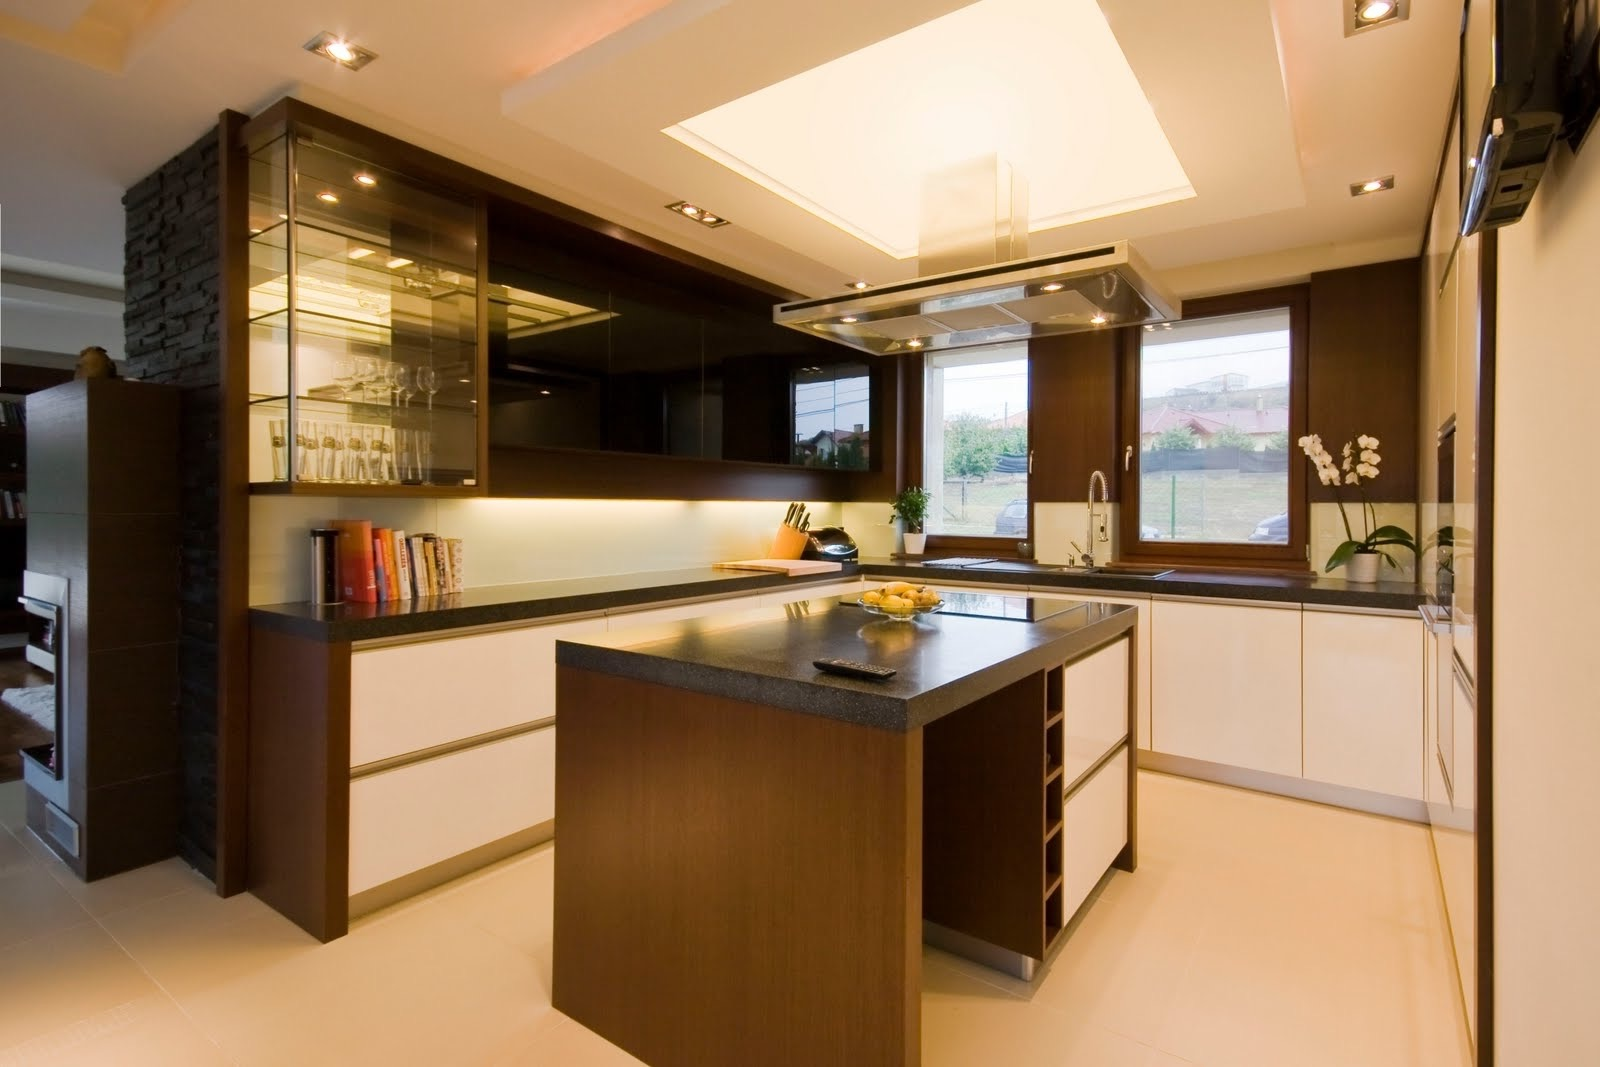 LED Ceiling Lighting For Modern Kitchen (View 24 of 39)